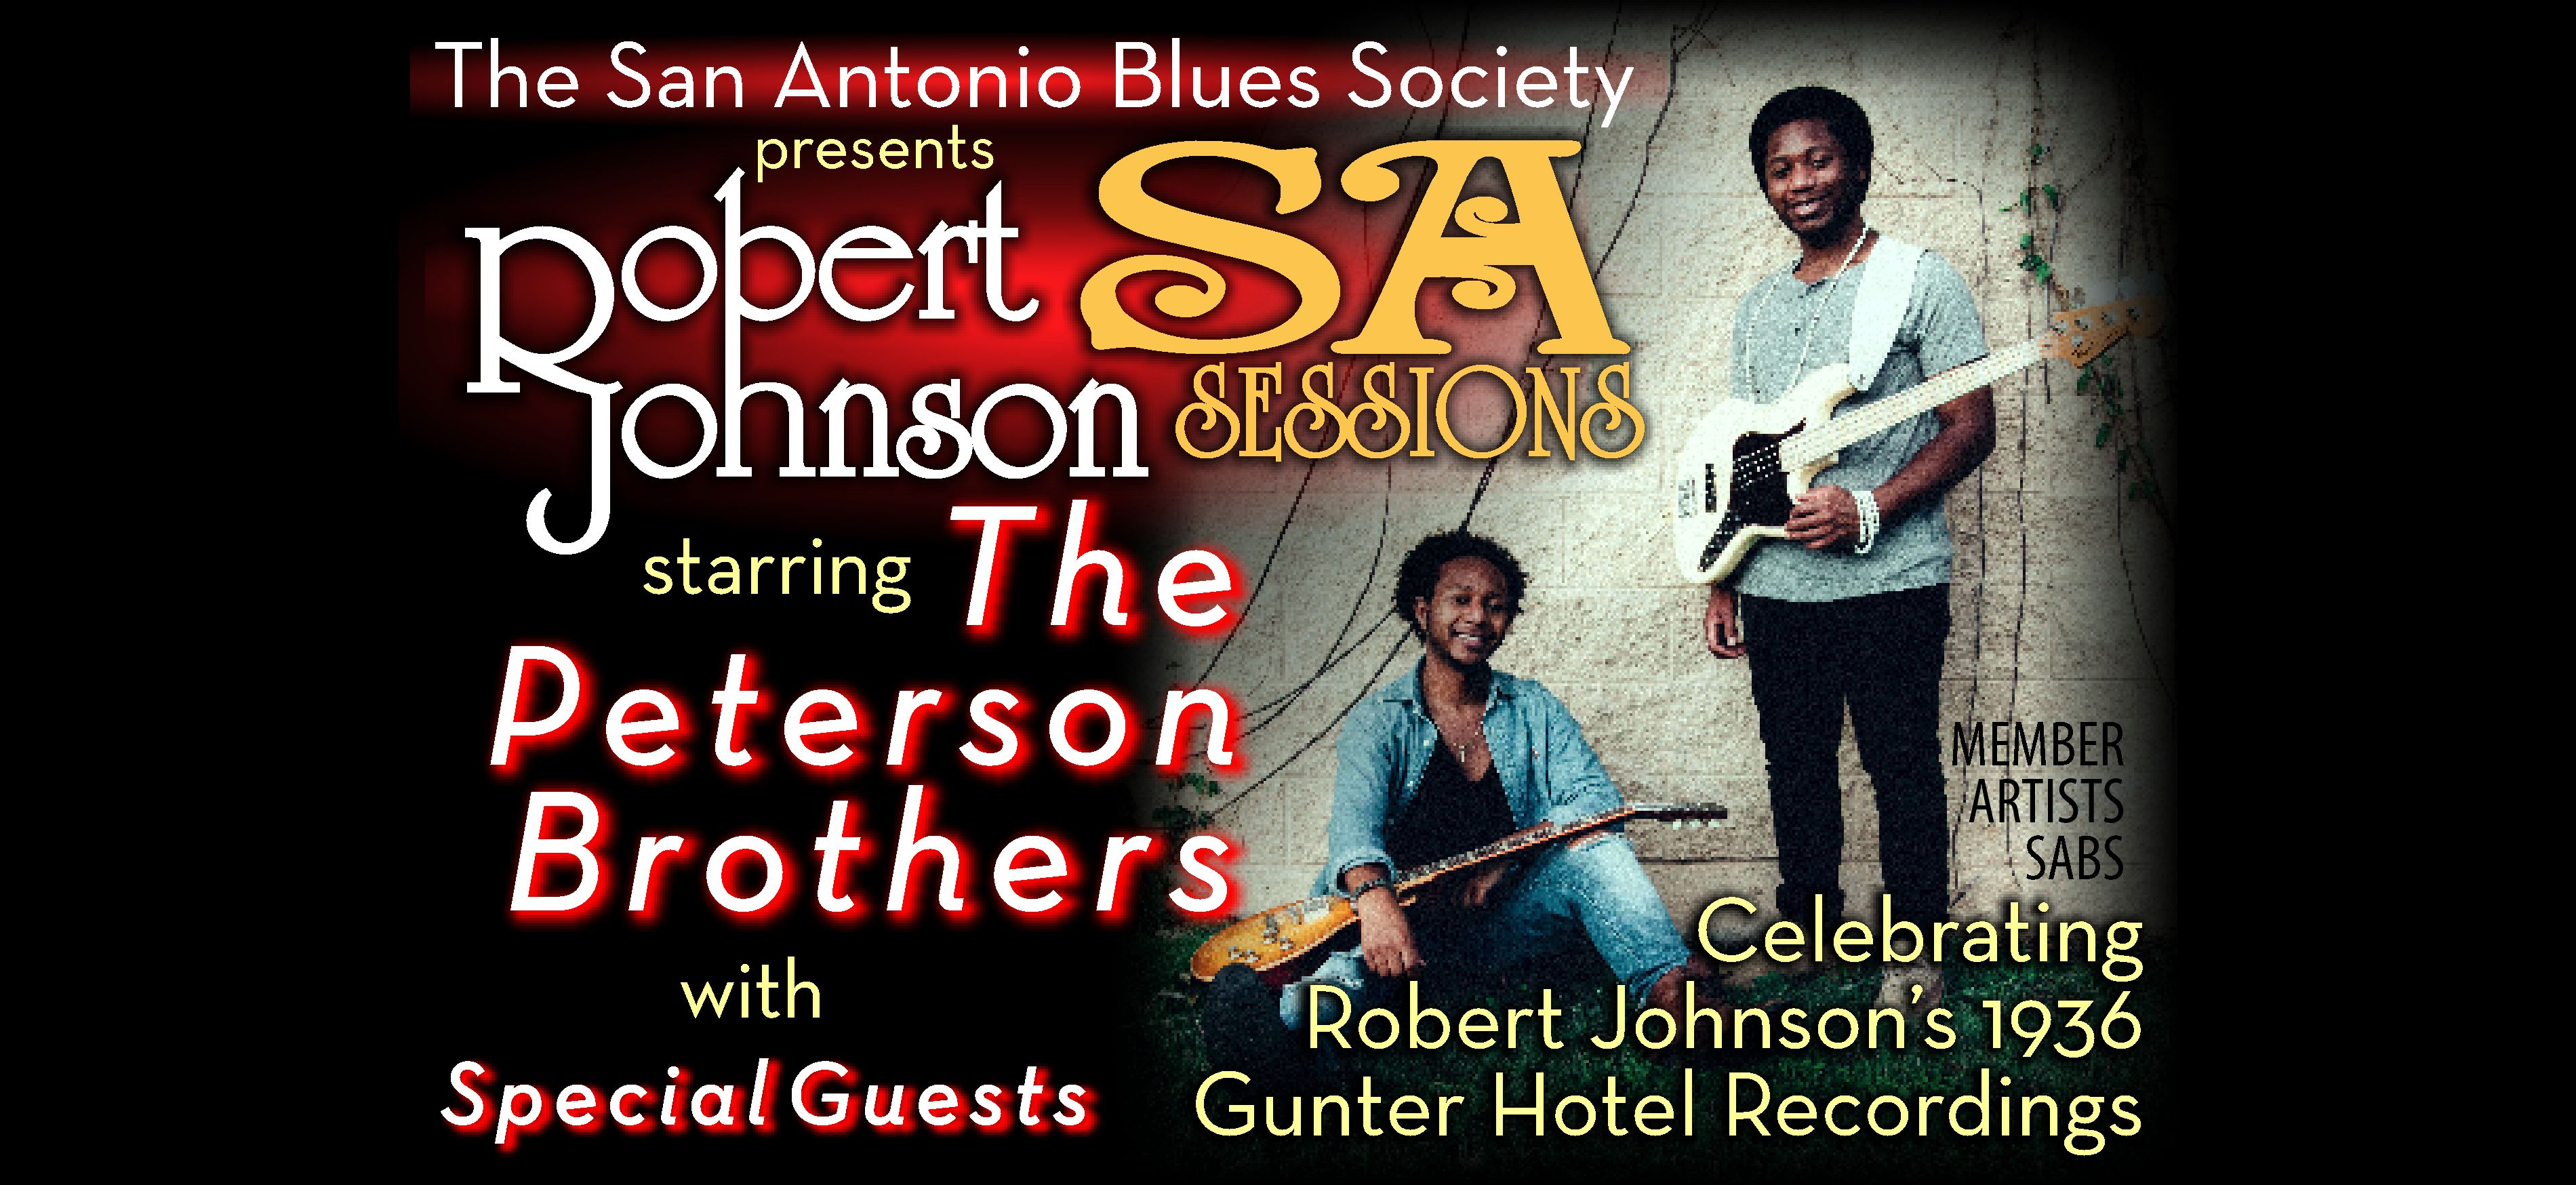 Robert Johnson SA Sessions starring The Peterson Brothers: